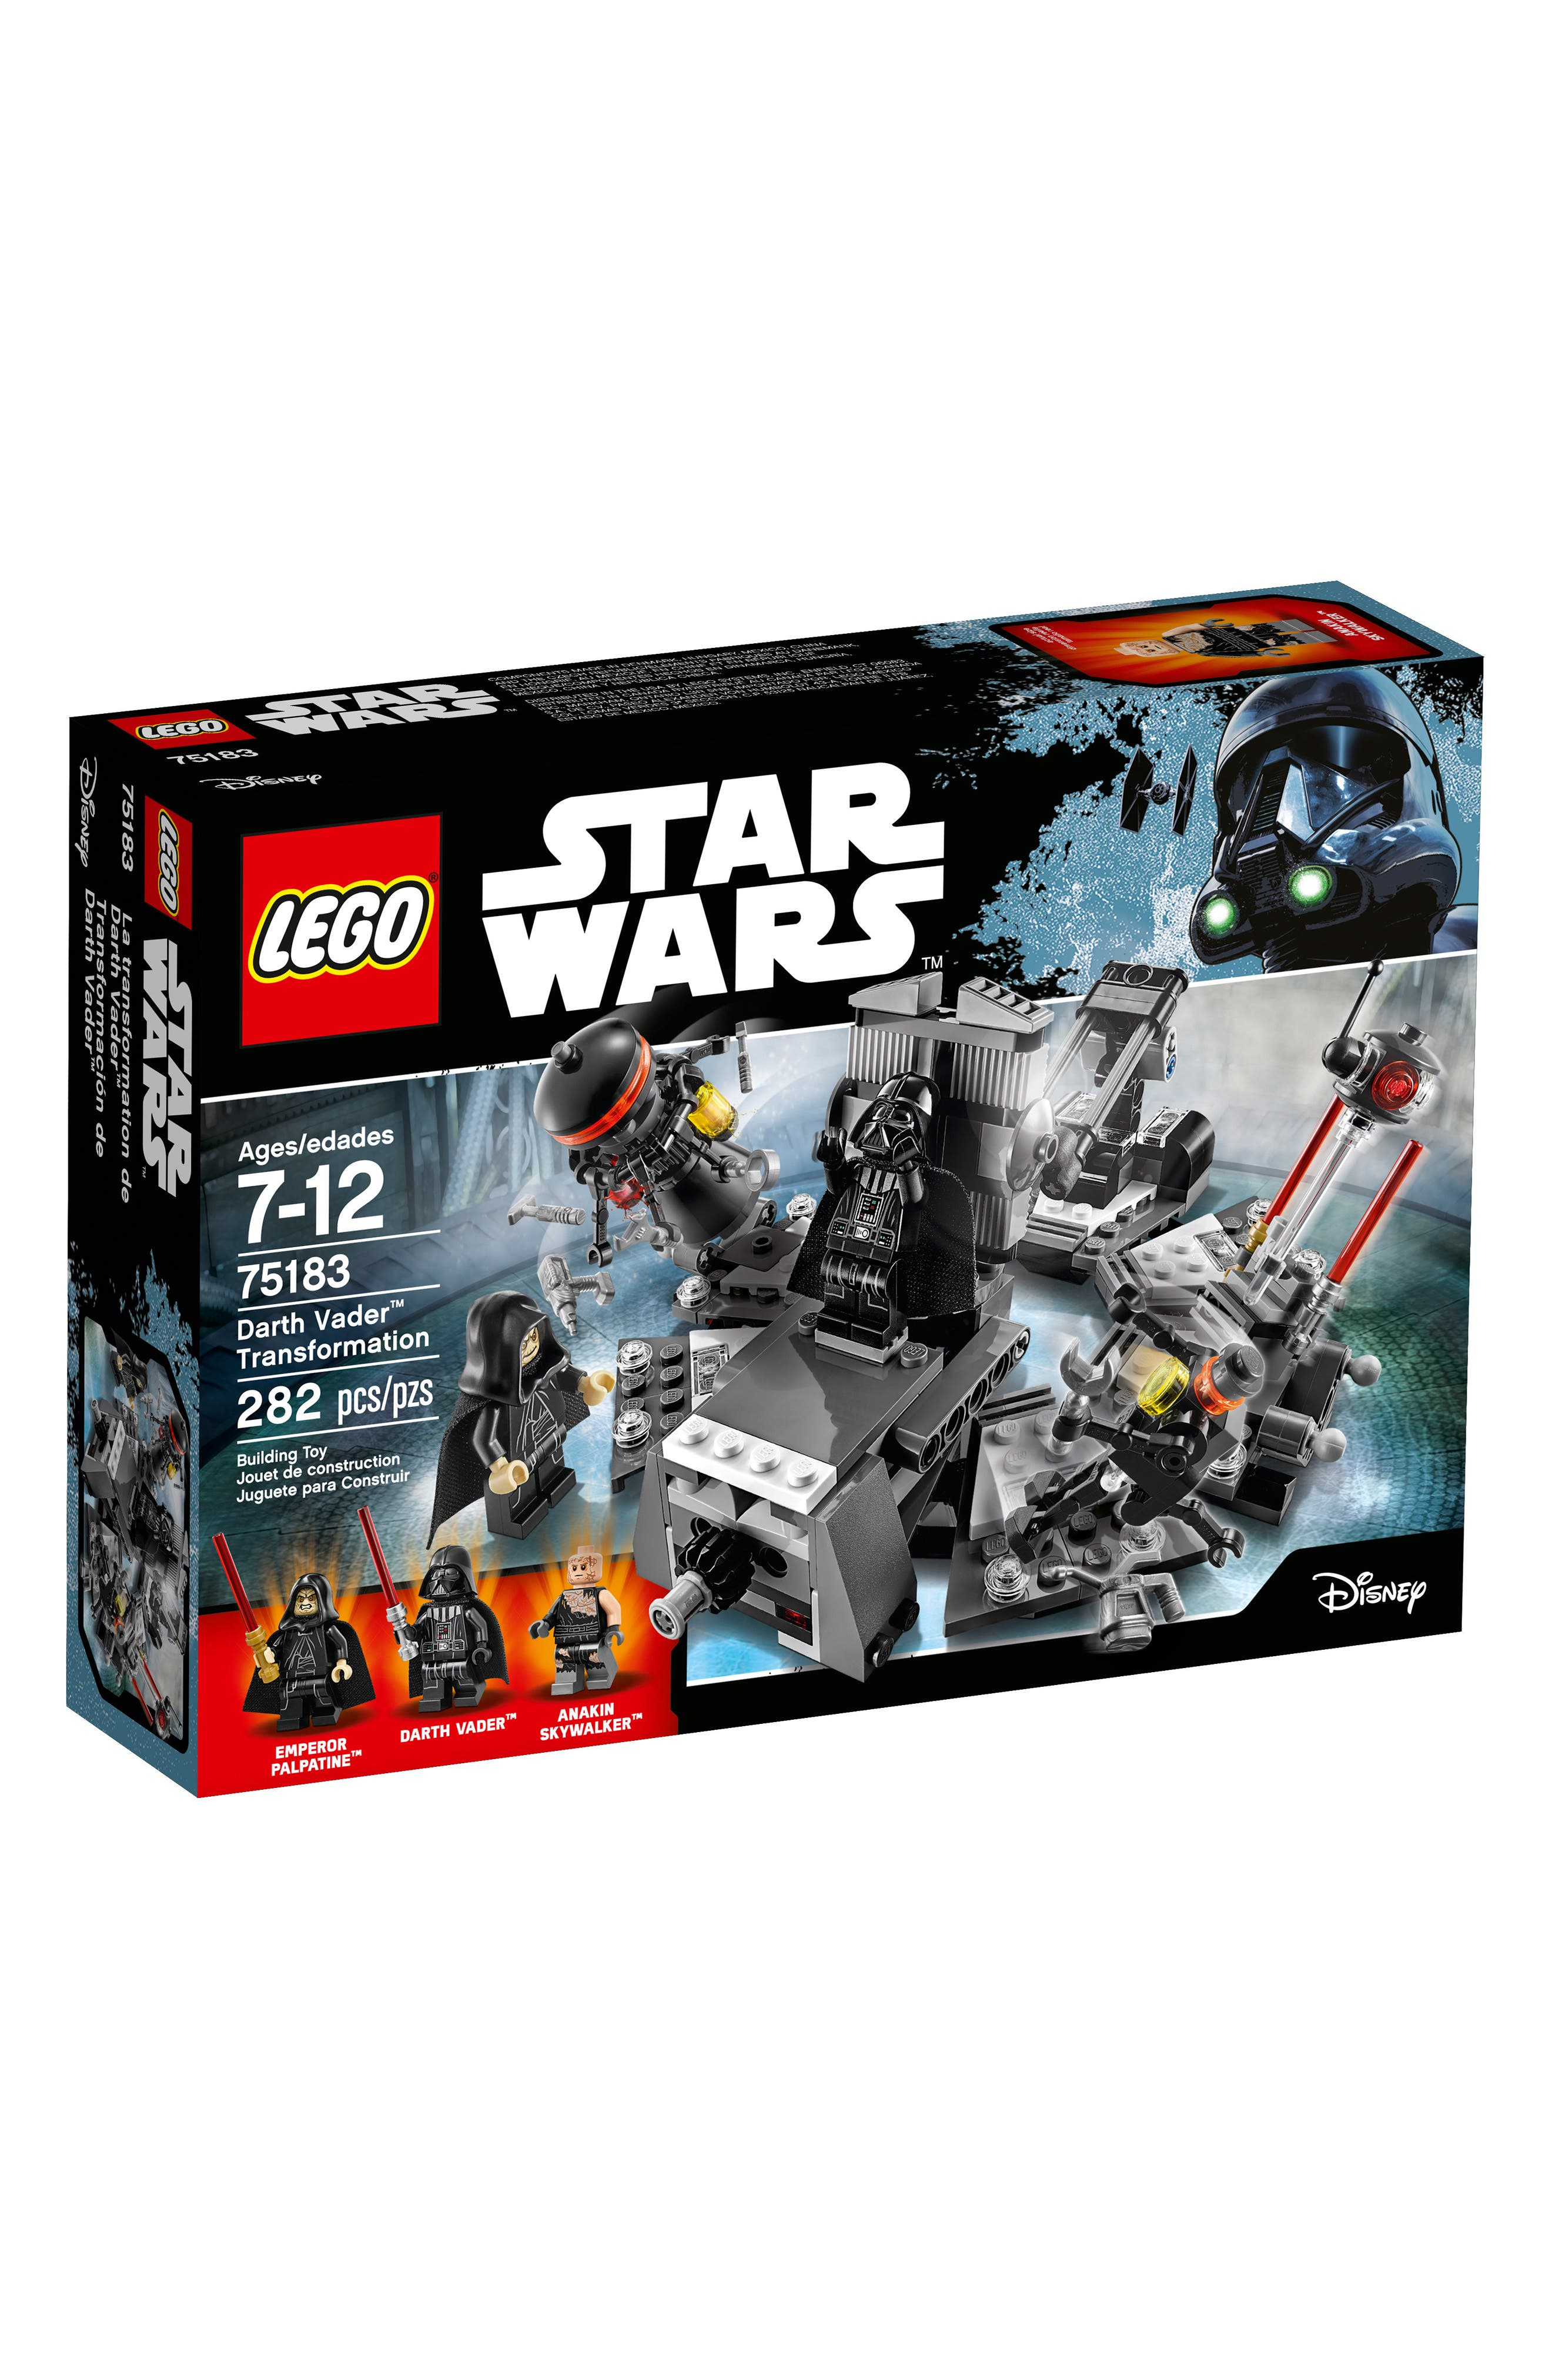 LEGO® Star Wars™ Revenge of the Sith Darth Vader Transformation - 75183